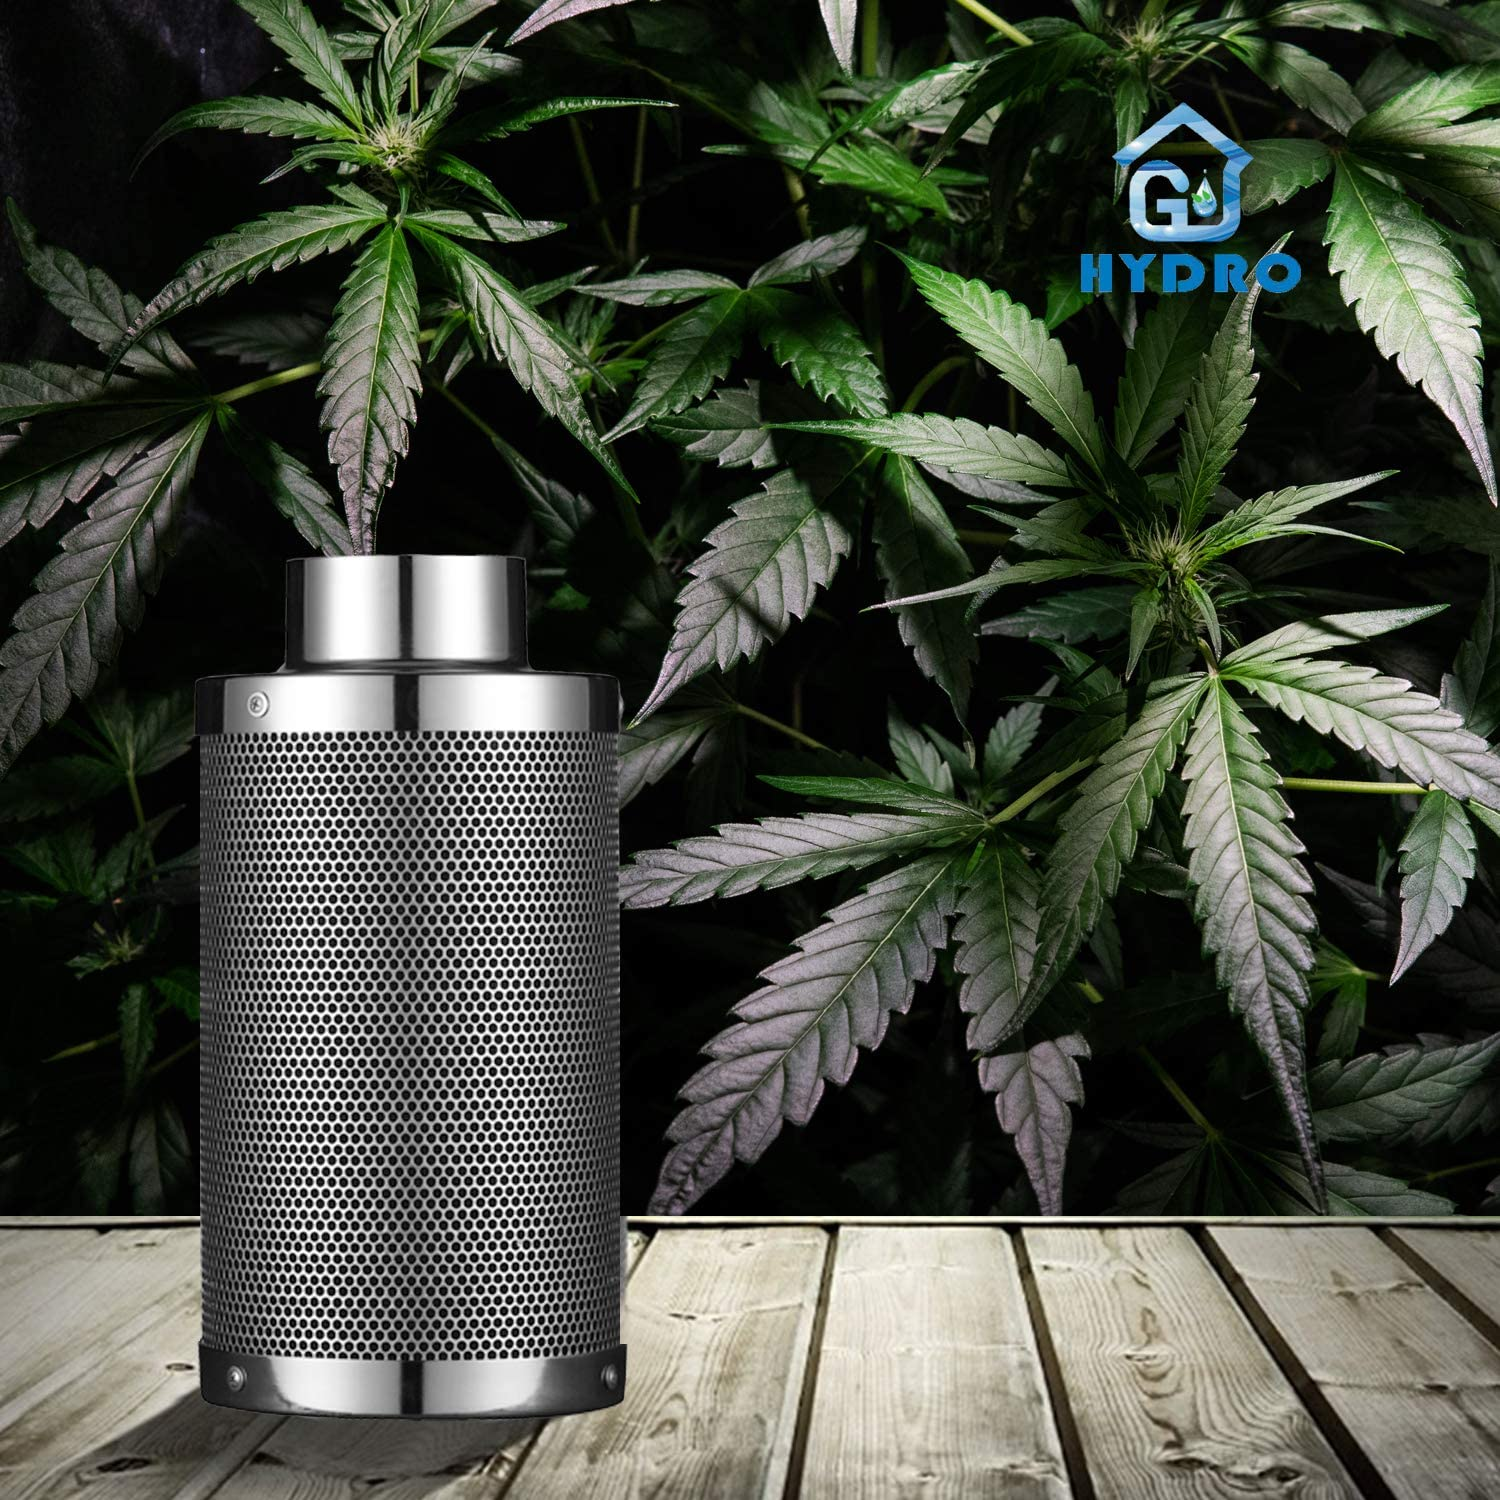 Silver G-HYDRO 6 Inch Air Carbon Filter with Australia Virgin Activated Charcoal Prefilter Included Odor Control Scrubber for Grow Tent Indoor Plants Inline Fan Reversible Flange 6 x 18 Inch 425 CFM